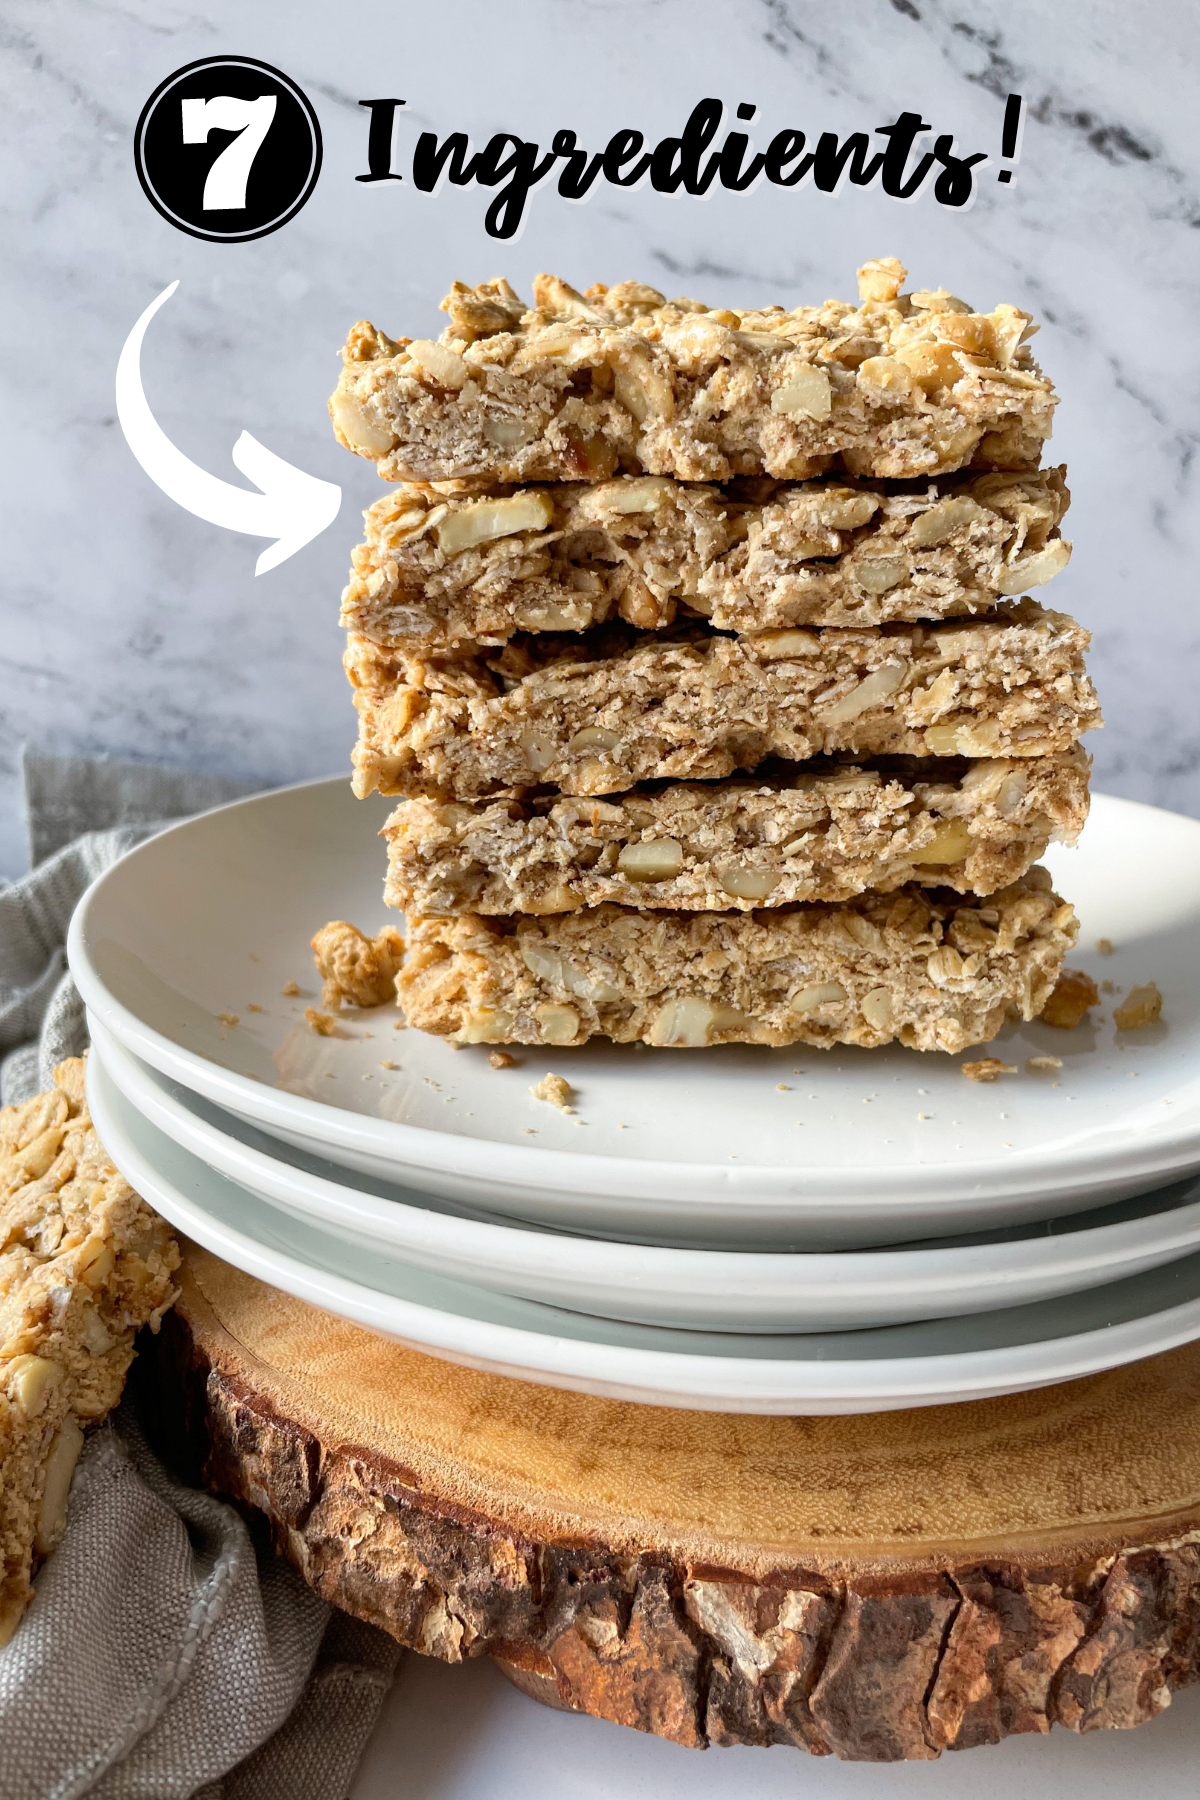 photo of protein bar with text overlay